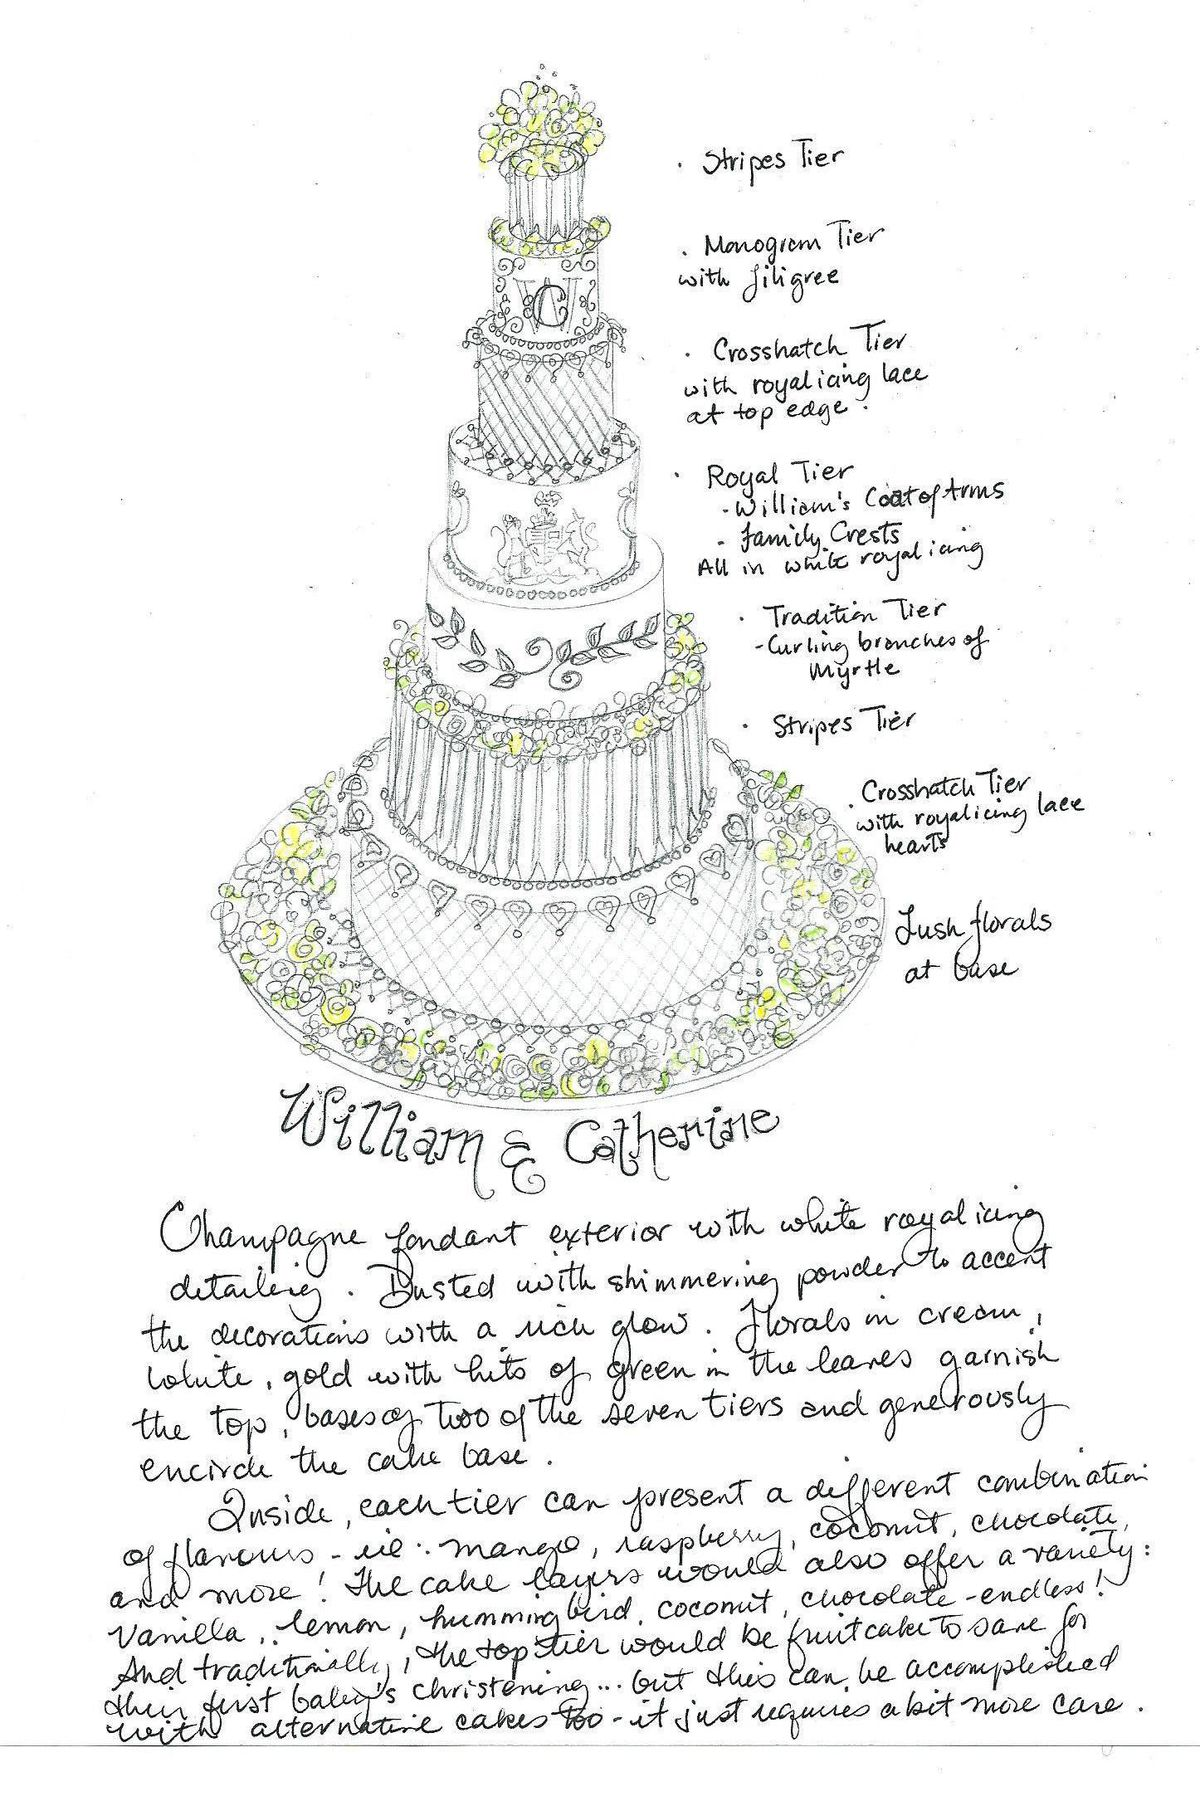 Deb Turner of Cakes Galore, Sooke, B.C. As the cake is to be displayed in a large venue, the champagne tiers can also reach for the sky. Using seven tiers, I have presented a mix of styles: clean, straight lines adorn the top and sixth tier, finished with a row of triangles and pearls at the bases. The second tier is for William and Kate, with an entwined monogram wrapped around the sides. The royal tier has William's coat of arms and would include family crests in white royal icing and fondant work. Strands of curling myrtle branches wind around the fifth tier as a nod to tradition. I've used shades of white, cream and gold with hints of green [and] a feminine bouquet at the cake top with smaller florals encircling the first and fifth tier bases, and finally a generous profusion of blooms encircling the entire cake base.